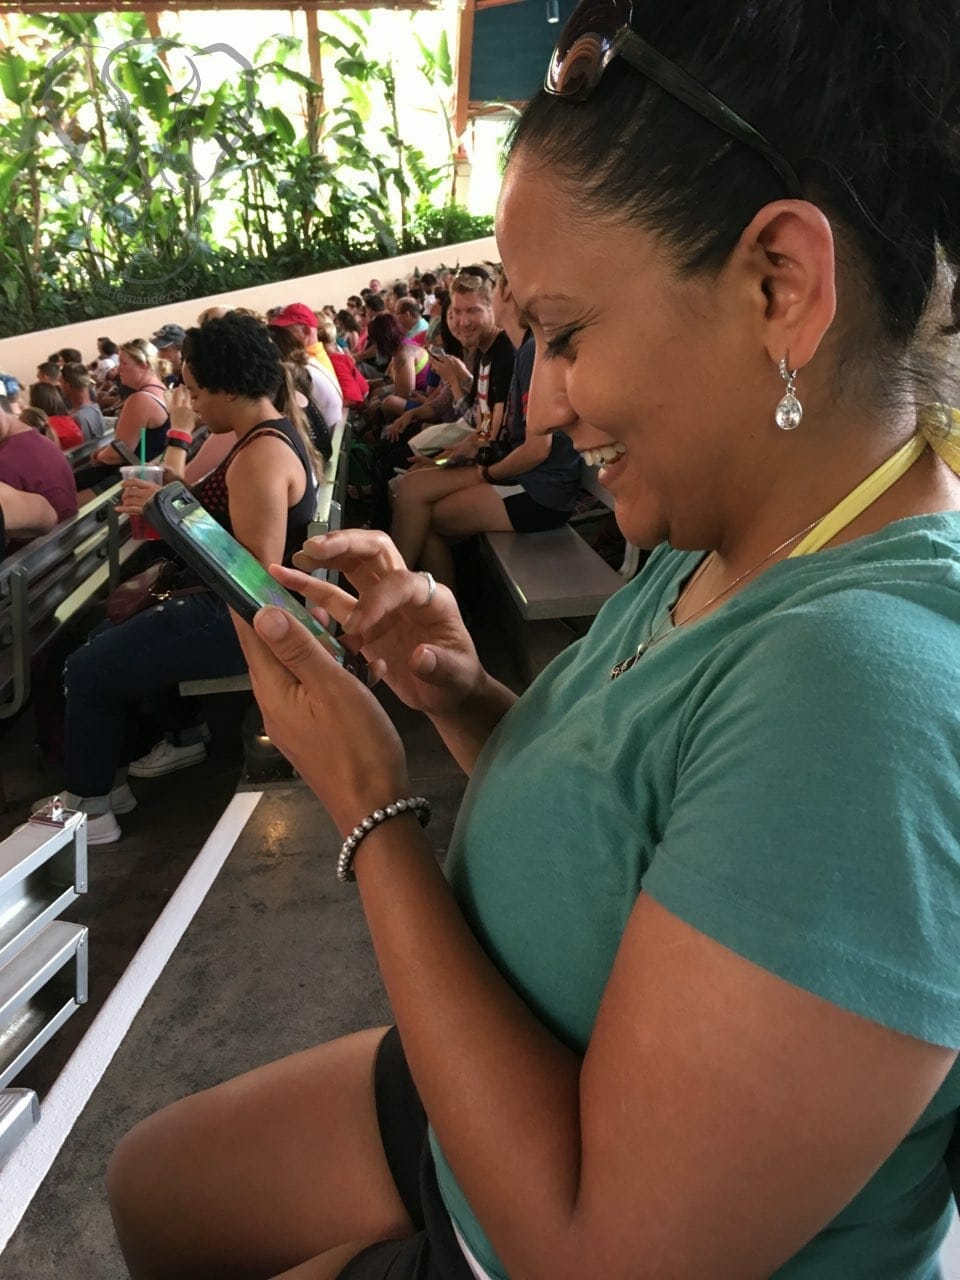 Miranda playing Pokeman Go on the day she found out she was pregnant (photo used with permission)